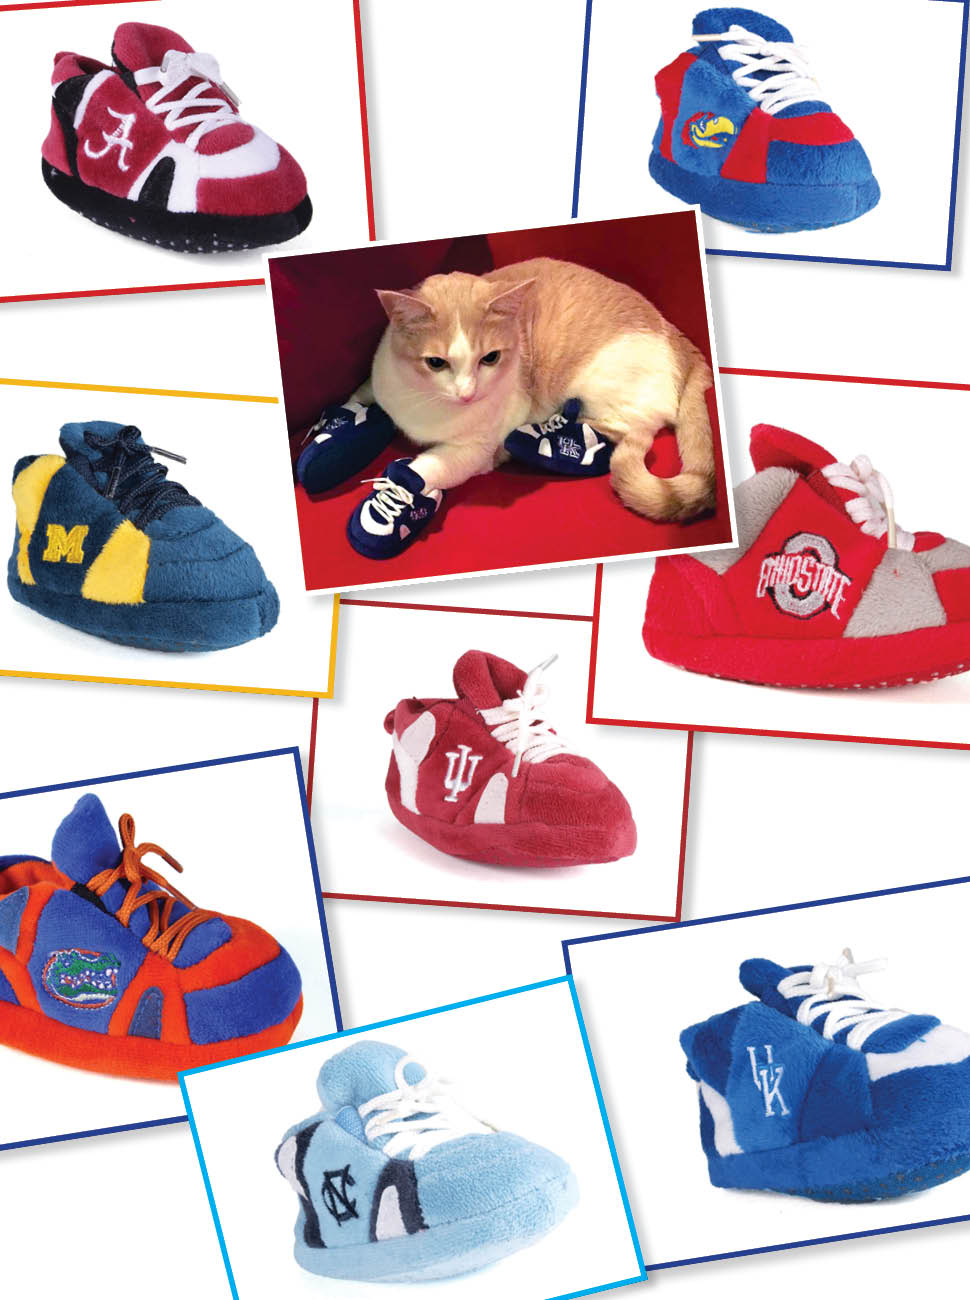 b80c605ce NCAA Baby Slippers